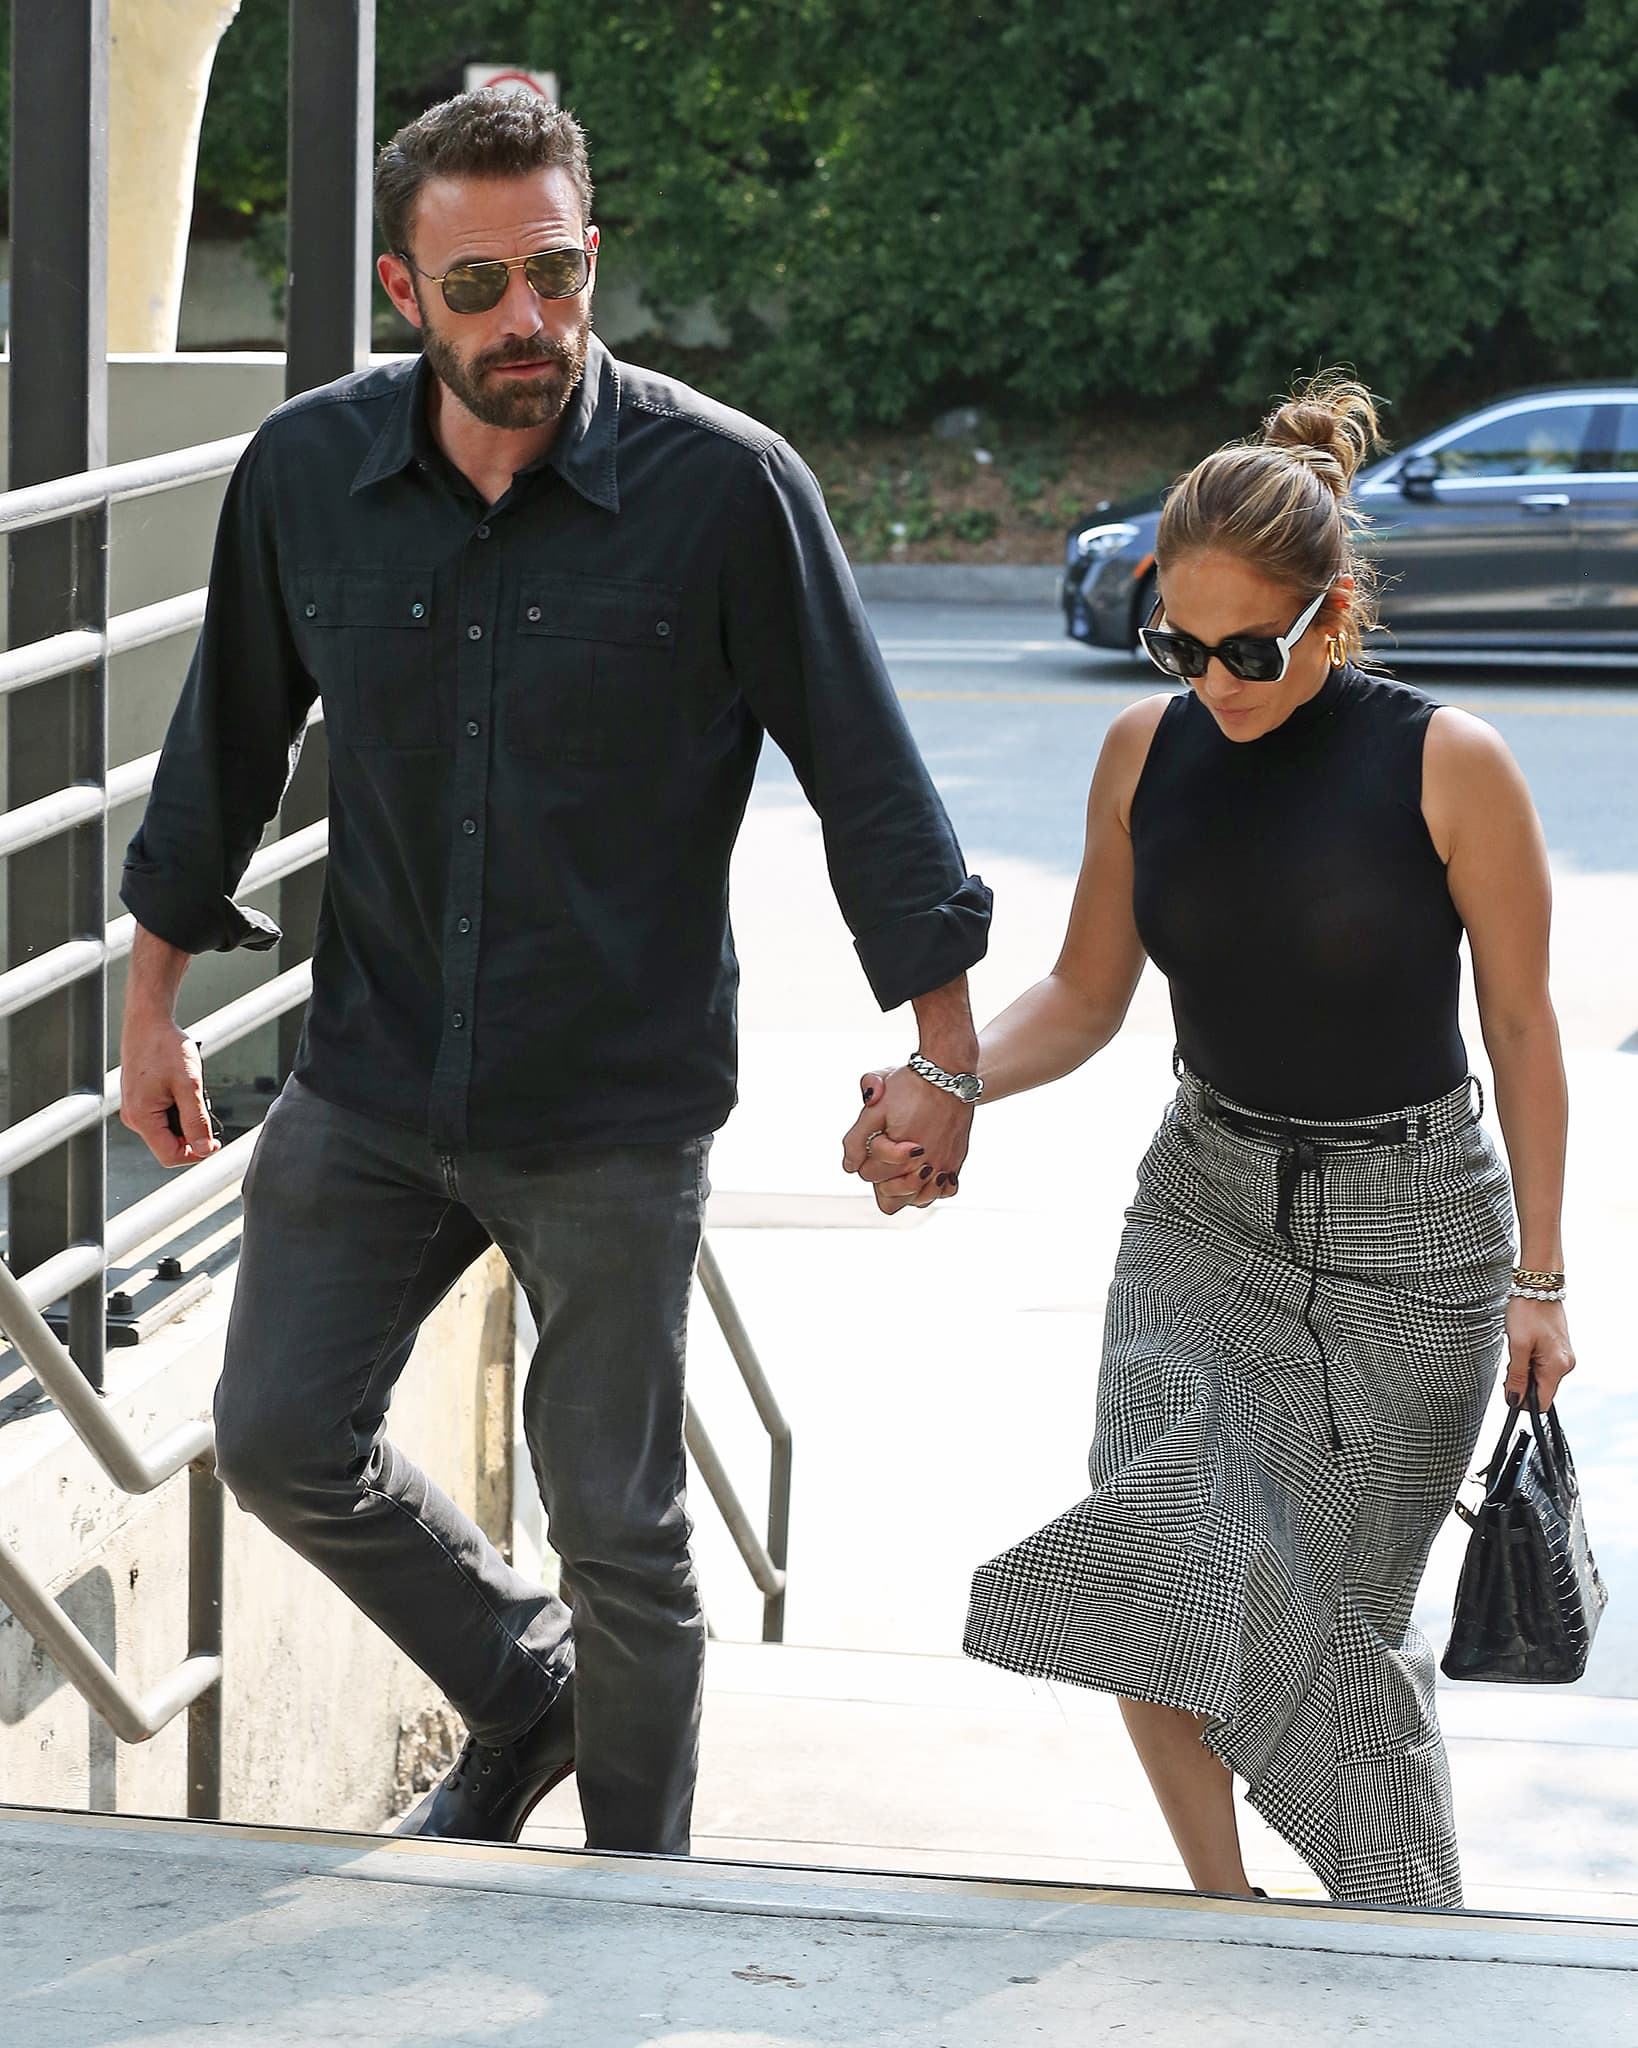 Ben Affleck and Jennifer Lopez go shopping at Westfield Mall in matching business-casual outfits on August 24, 2021